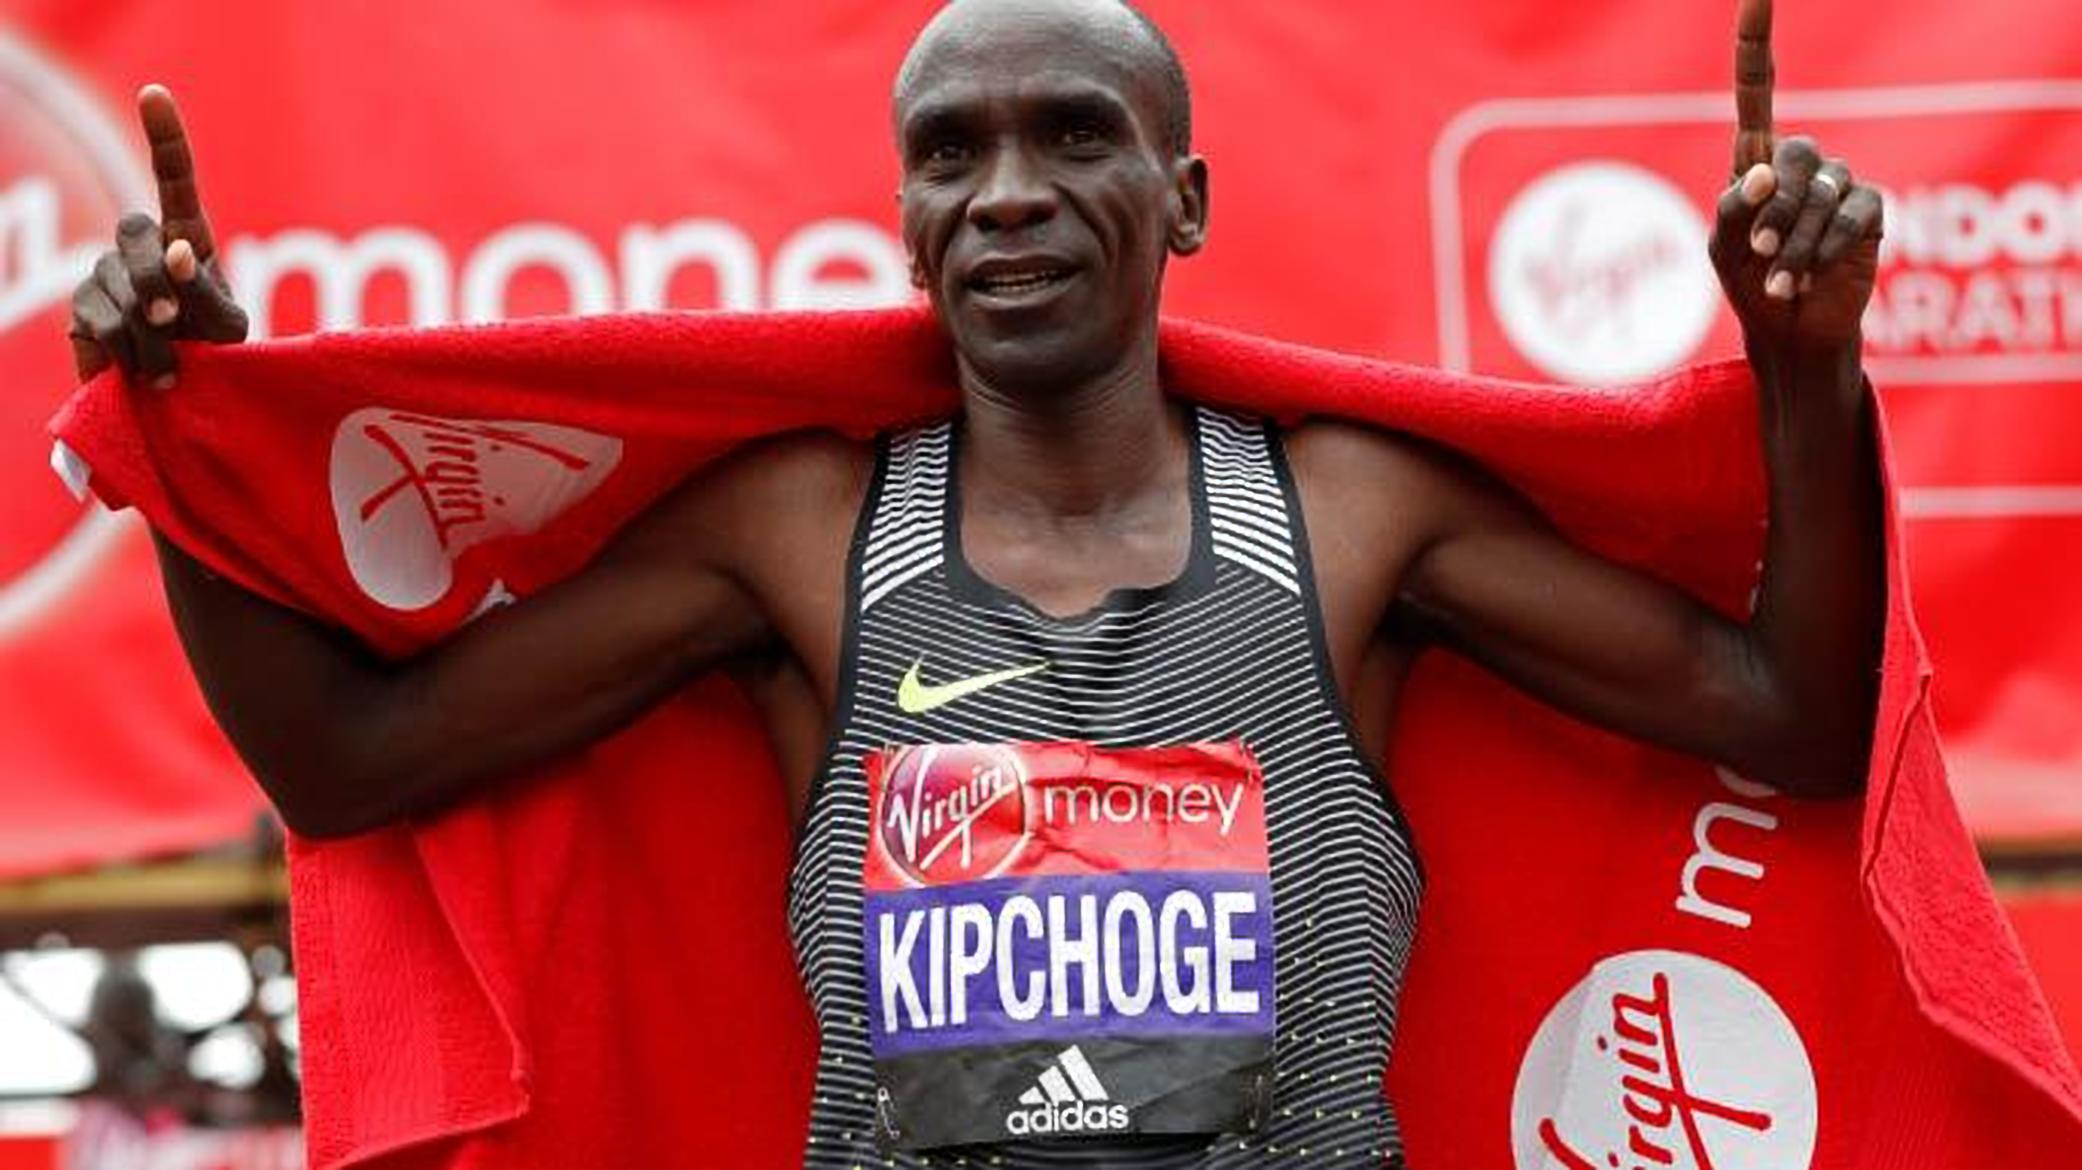 Kipchoge provided strong competition for Farah at the London Marathon